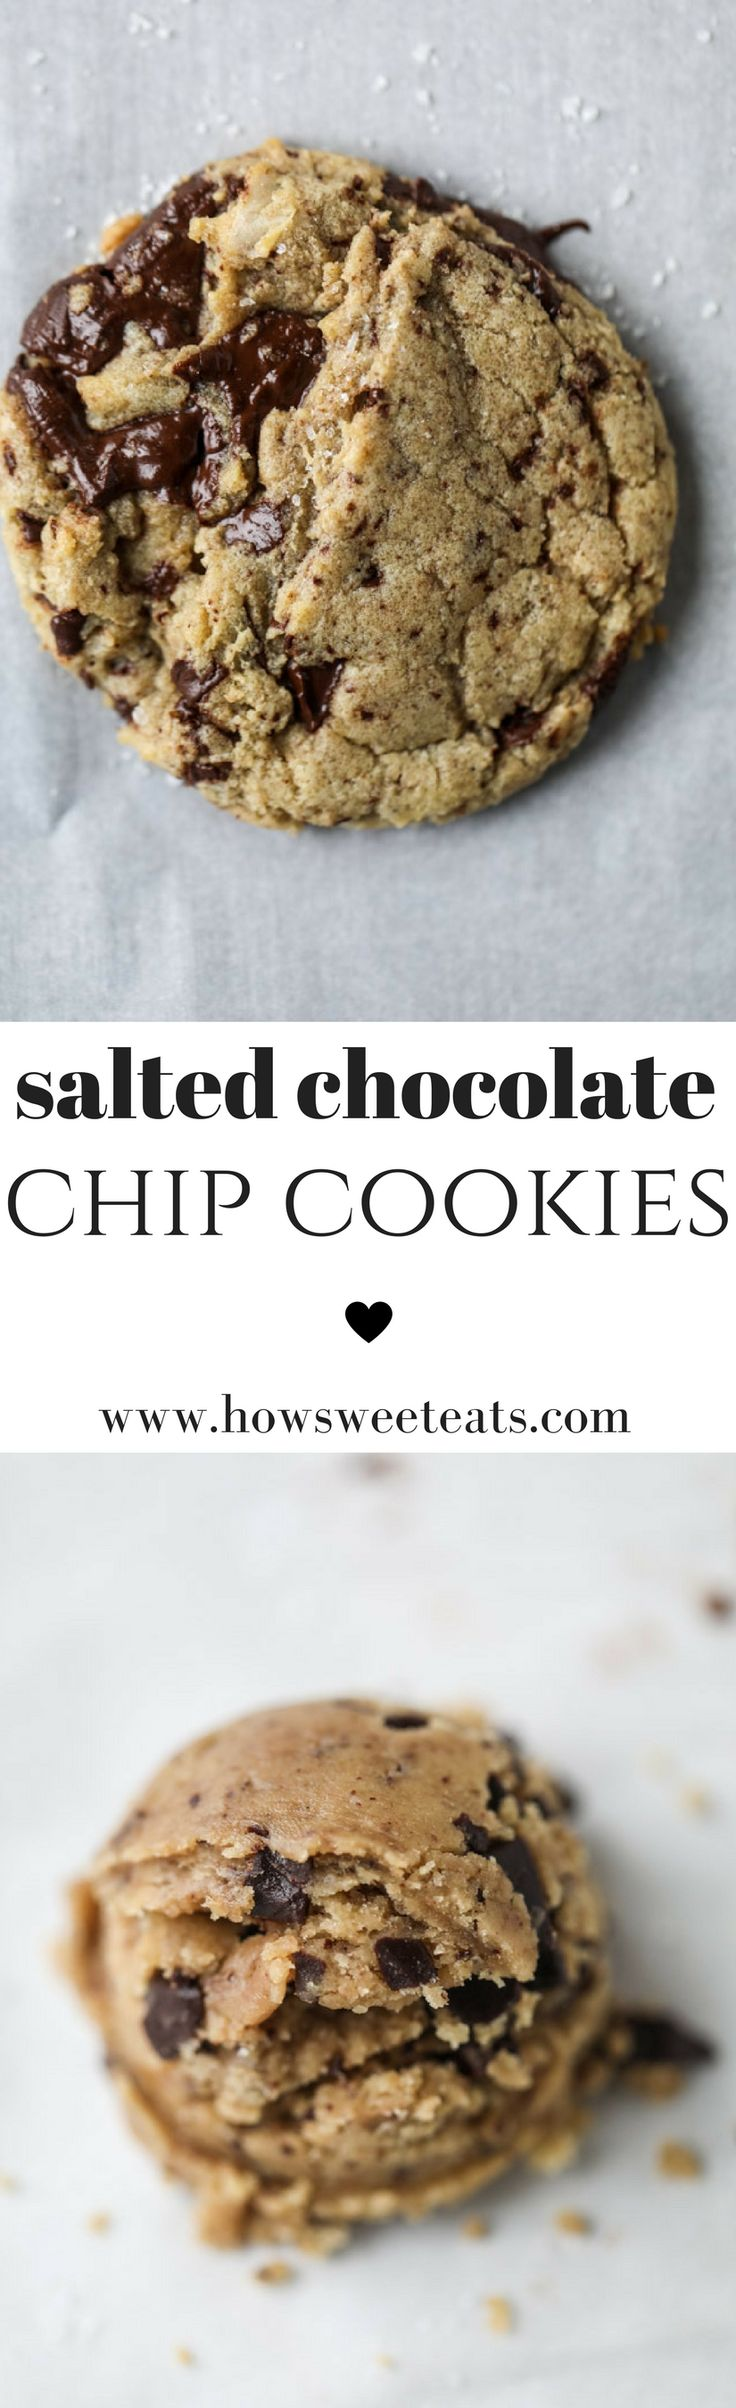 Chewy Salted Chocolate Chip Cookies I @howsweeteats